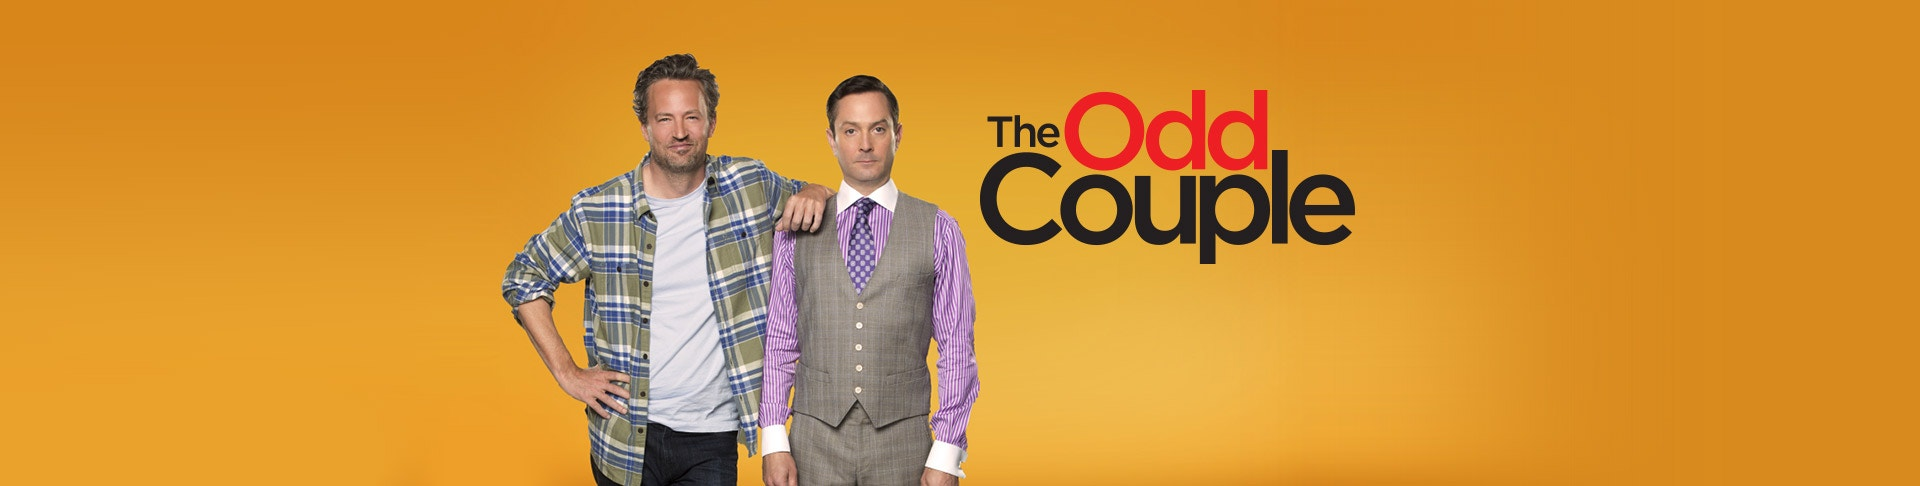 About The Odd Couple - Network Ten